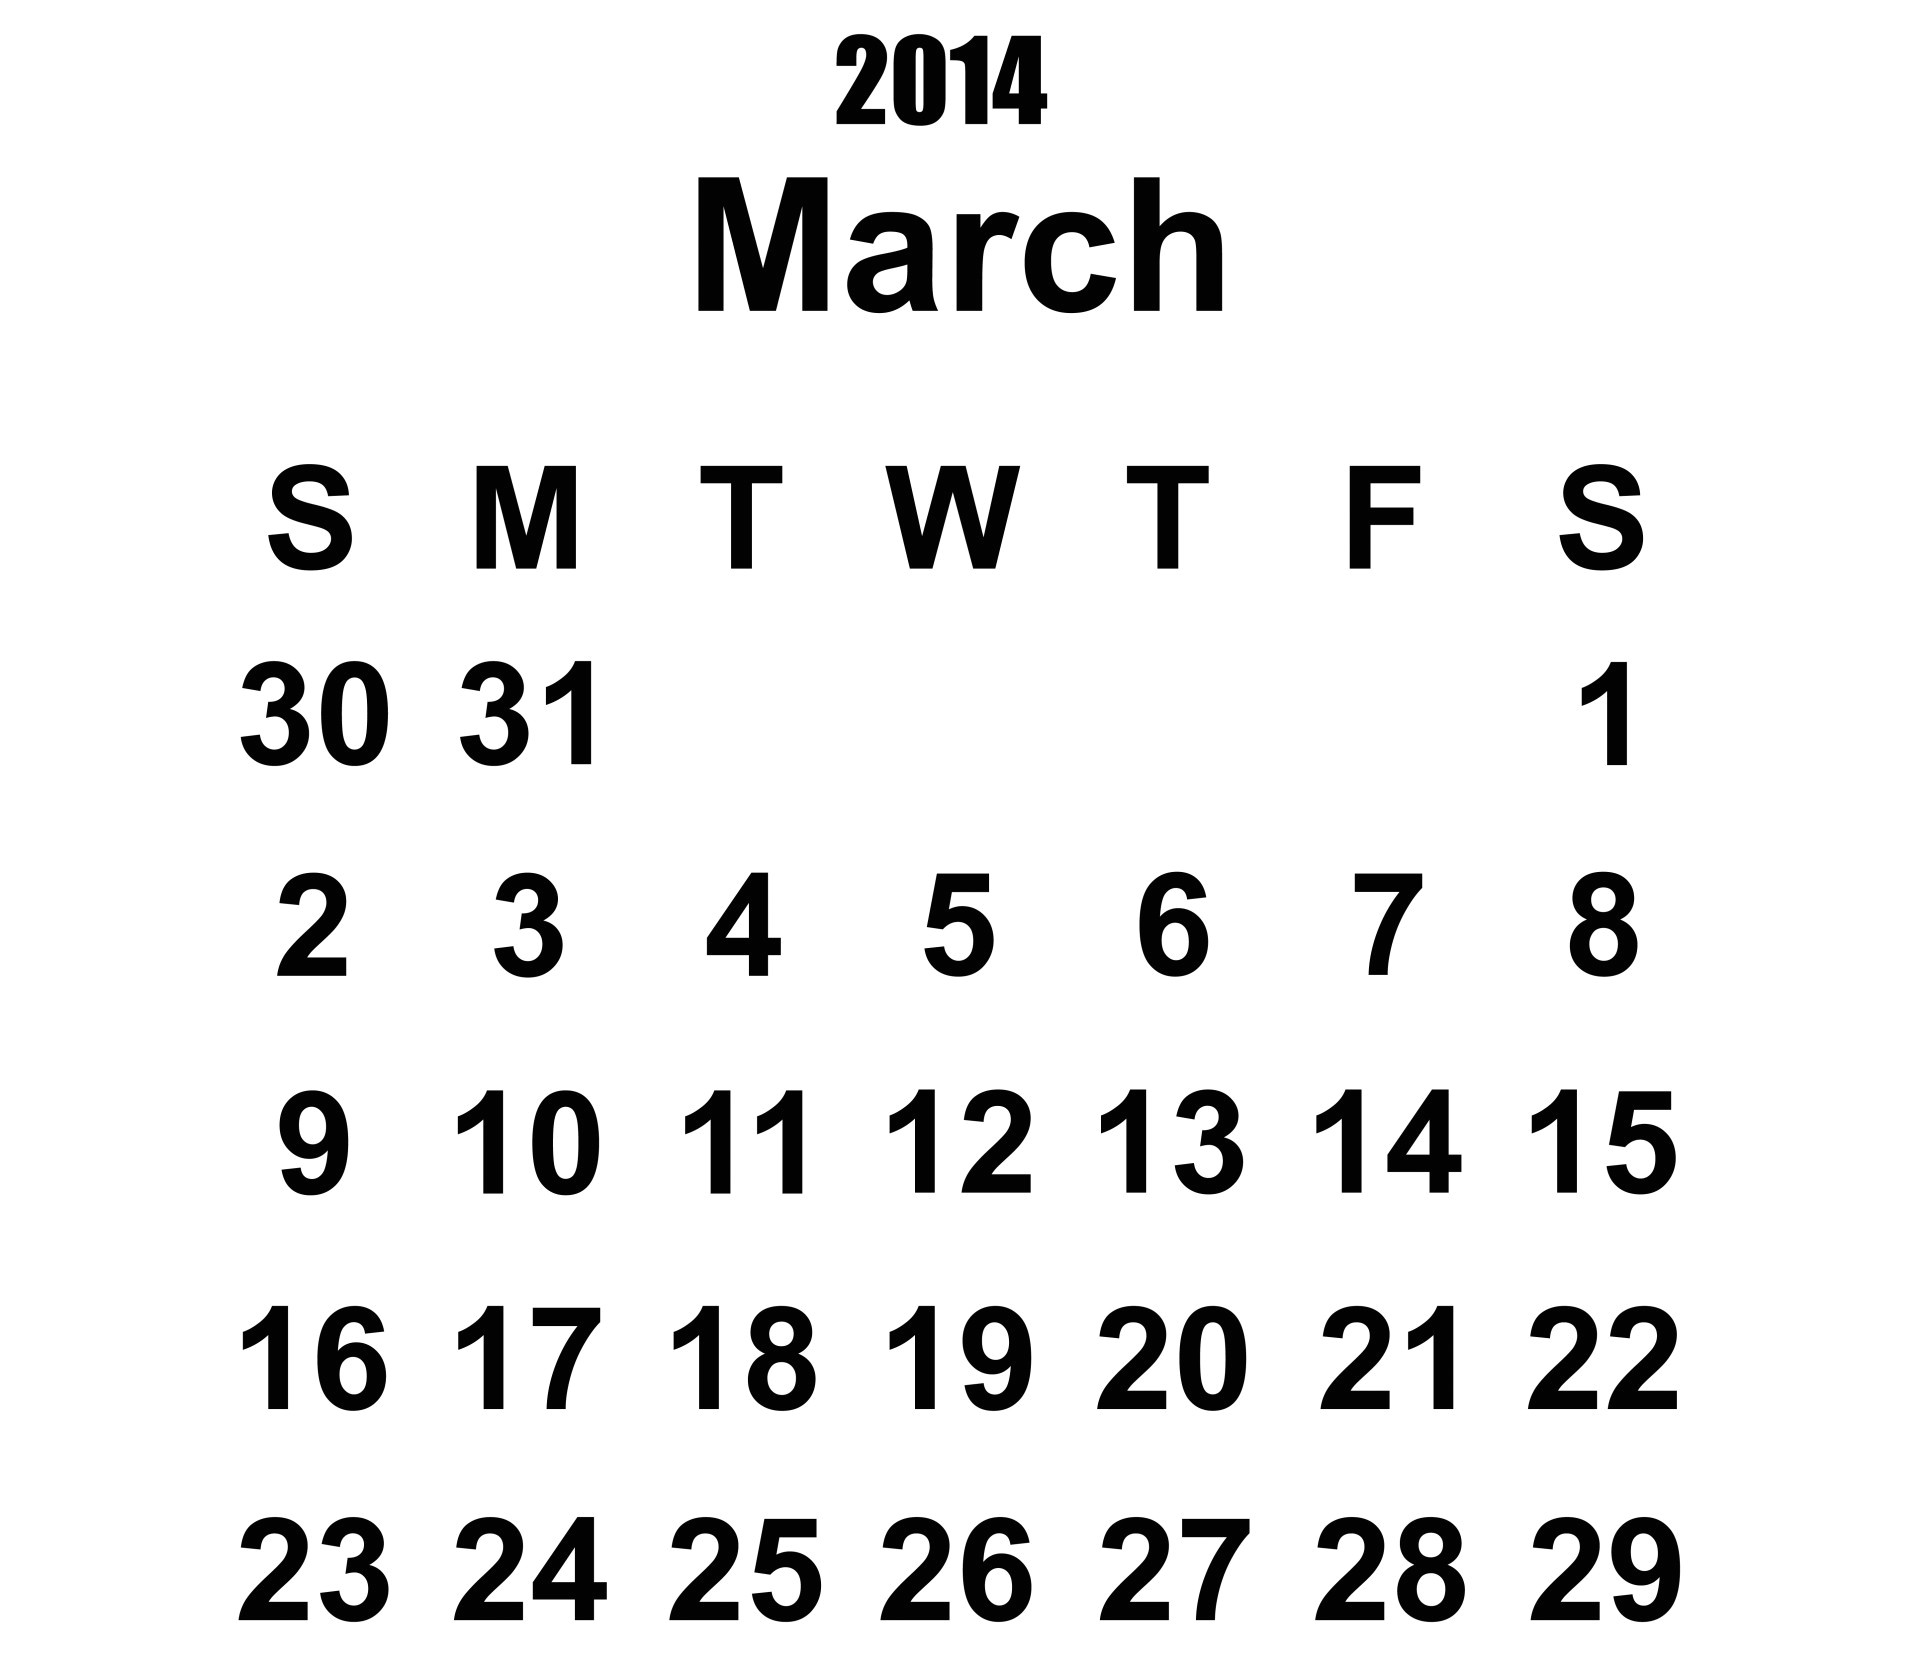 view image image 41280 picture 2014 calendar march template